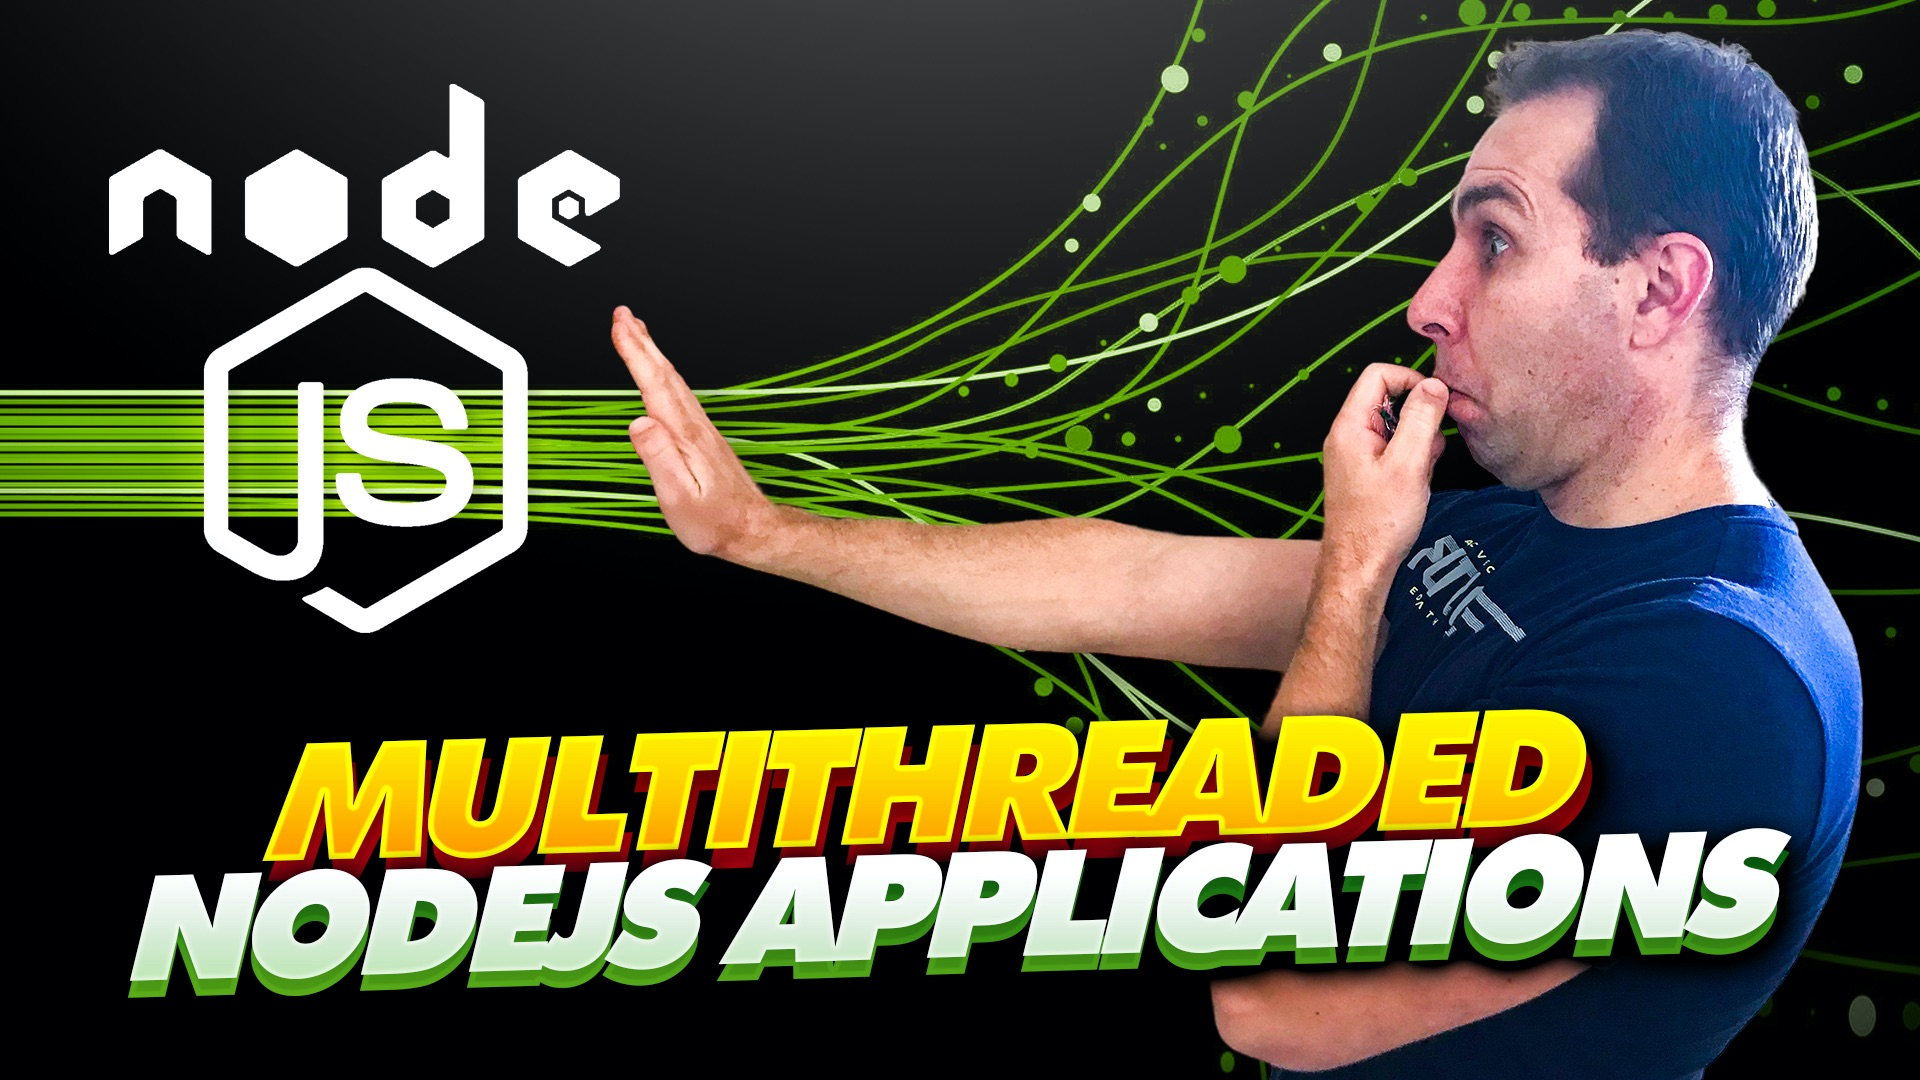 /how-to-manage-multithreaded-node-js-applications-for-better-performance-654t35od feature image